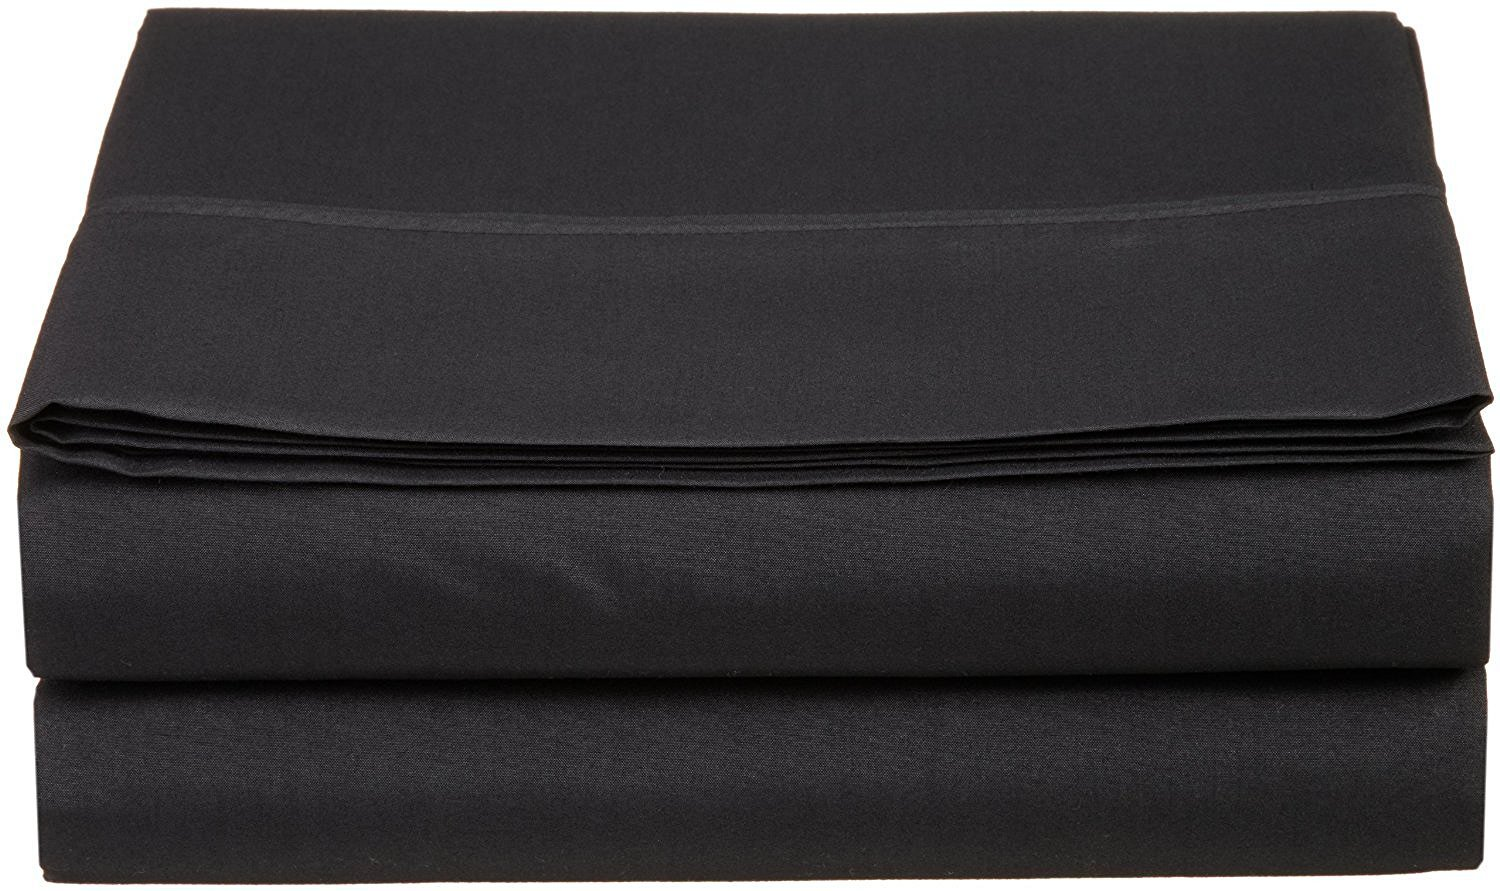 Luxury Fitted Sheet on Amazon! - HIGHEST QUALITY Elegant Comfort Wrinkle-Free 1500 Thread Count Egyptian Quality 1-Piece Fitted Sheet, Twin/Twin XL Size, Black